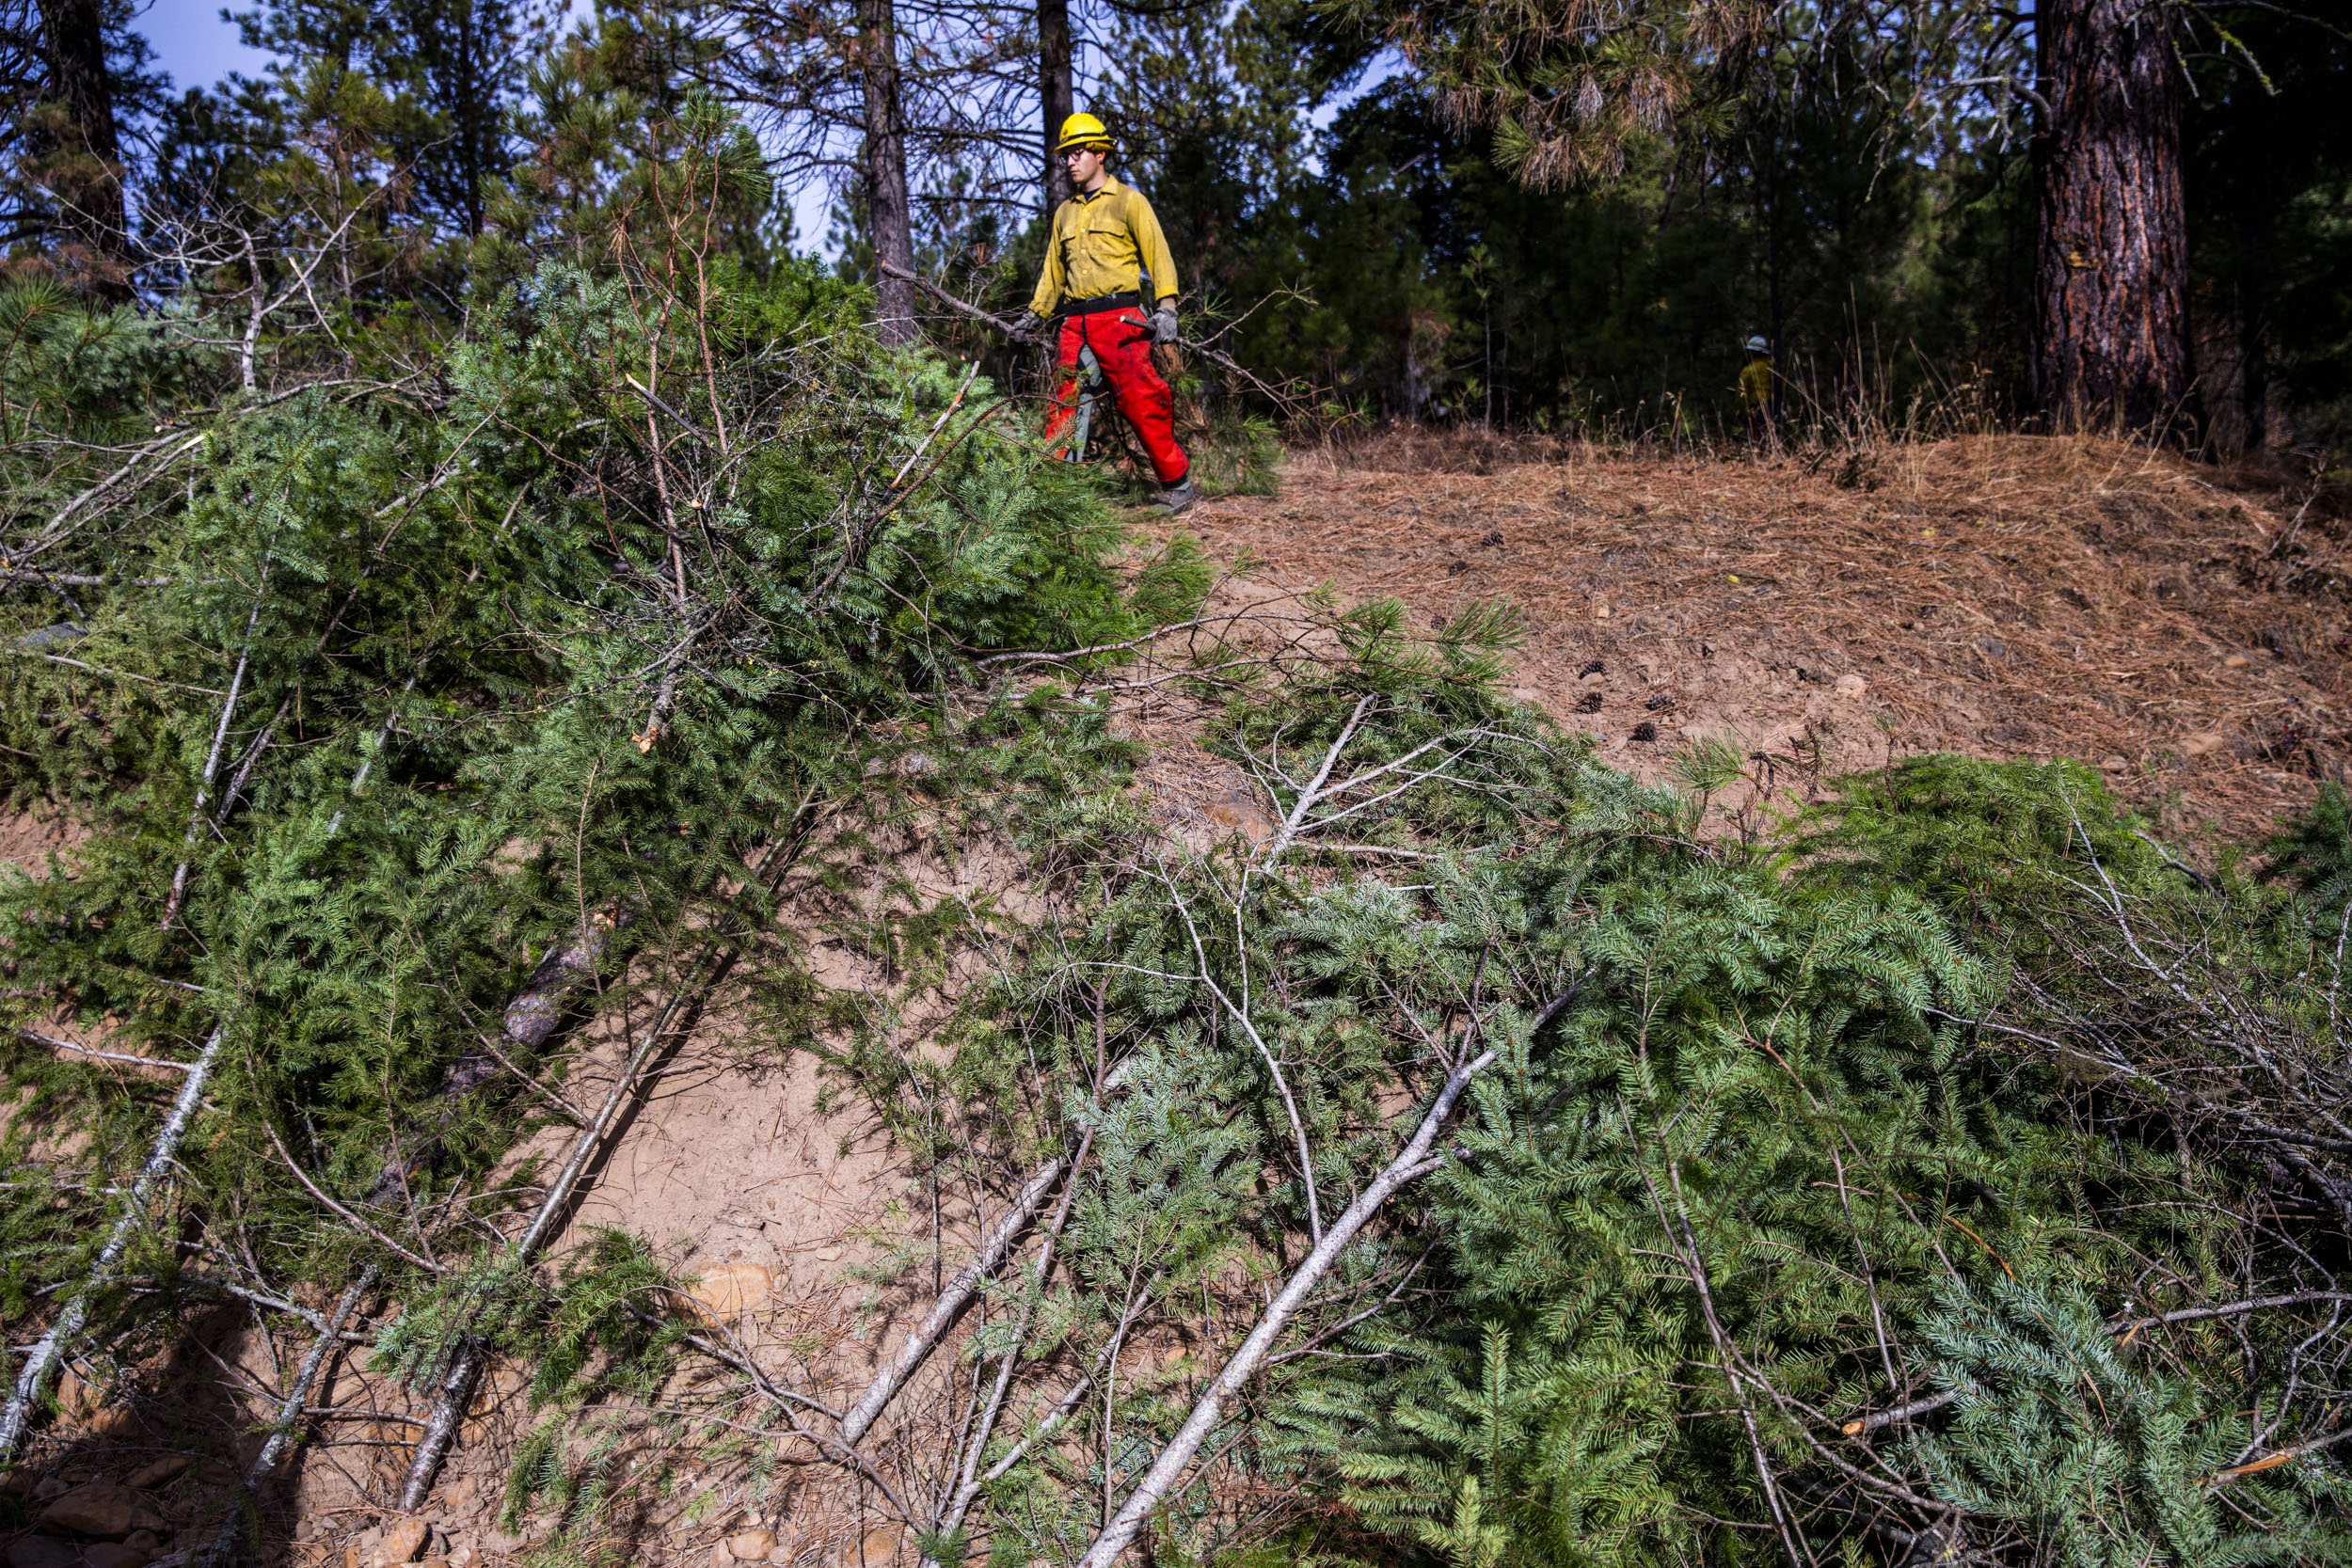 Crews work on thinning parts of the Teanaway Community Forest on Wednesday, Oct. 24, 2018, as a part of Washington State Lands Commissioner Hilary Franz's forest health treatment plan. The Department of Natural Resources is implementing the treatment plan which uses sections of dying forest for cross laminated timber. Franz says this plan will also help keep the cost of wildfire suppression down and make forests more resilient to wildfires. (Photo by Dorothy Edwards/Crosscut)